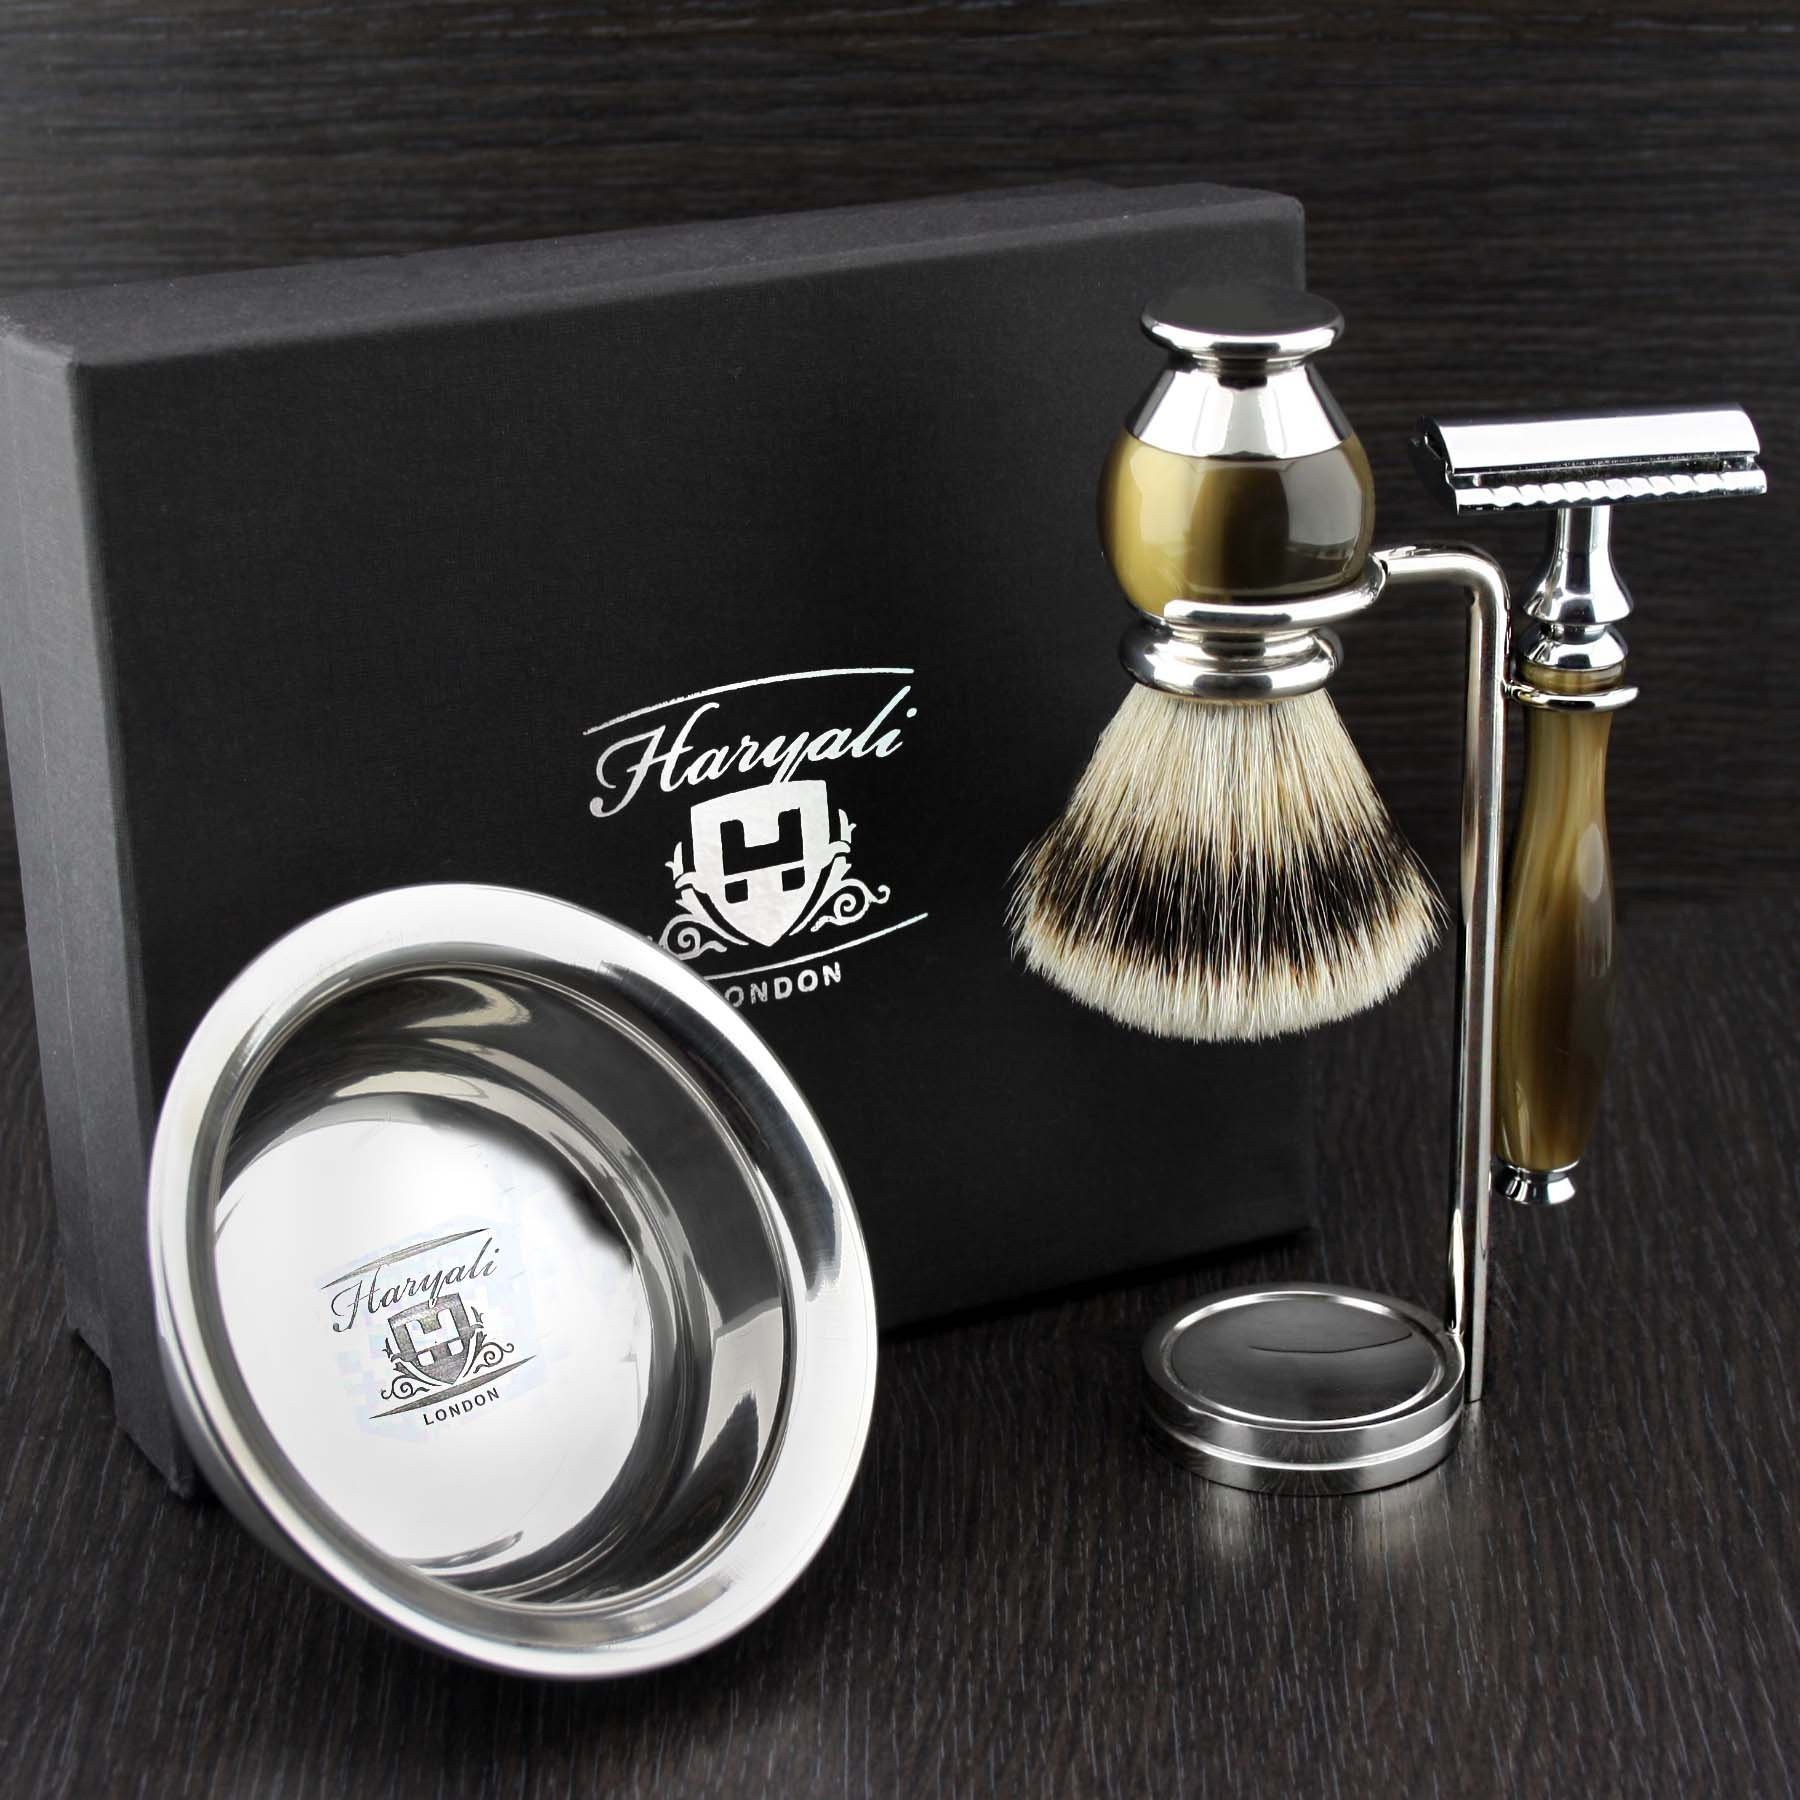 Simulated Horn and Nickel 4 Pieces Men's Shaving Set With De Safety Razor (Blades Not Include). Newly Designed By HARYALI LONDON